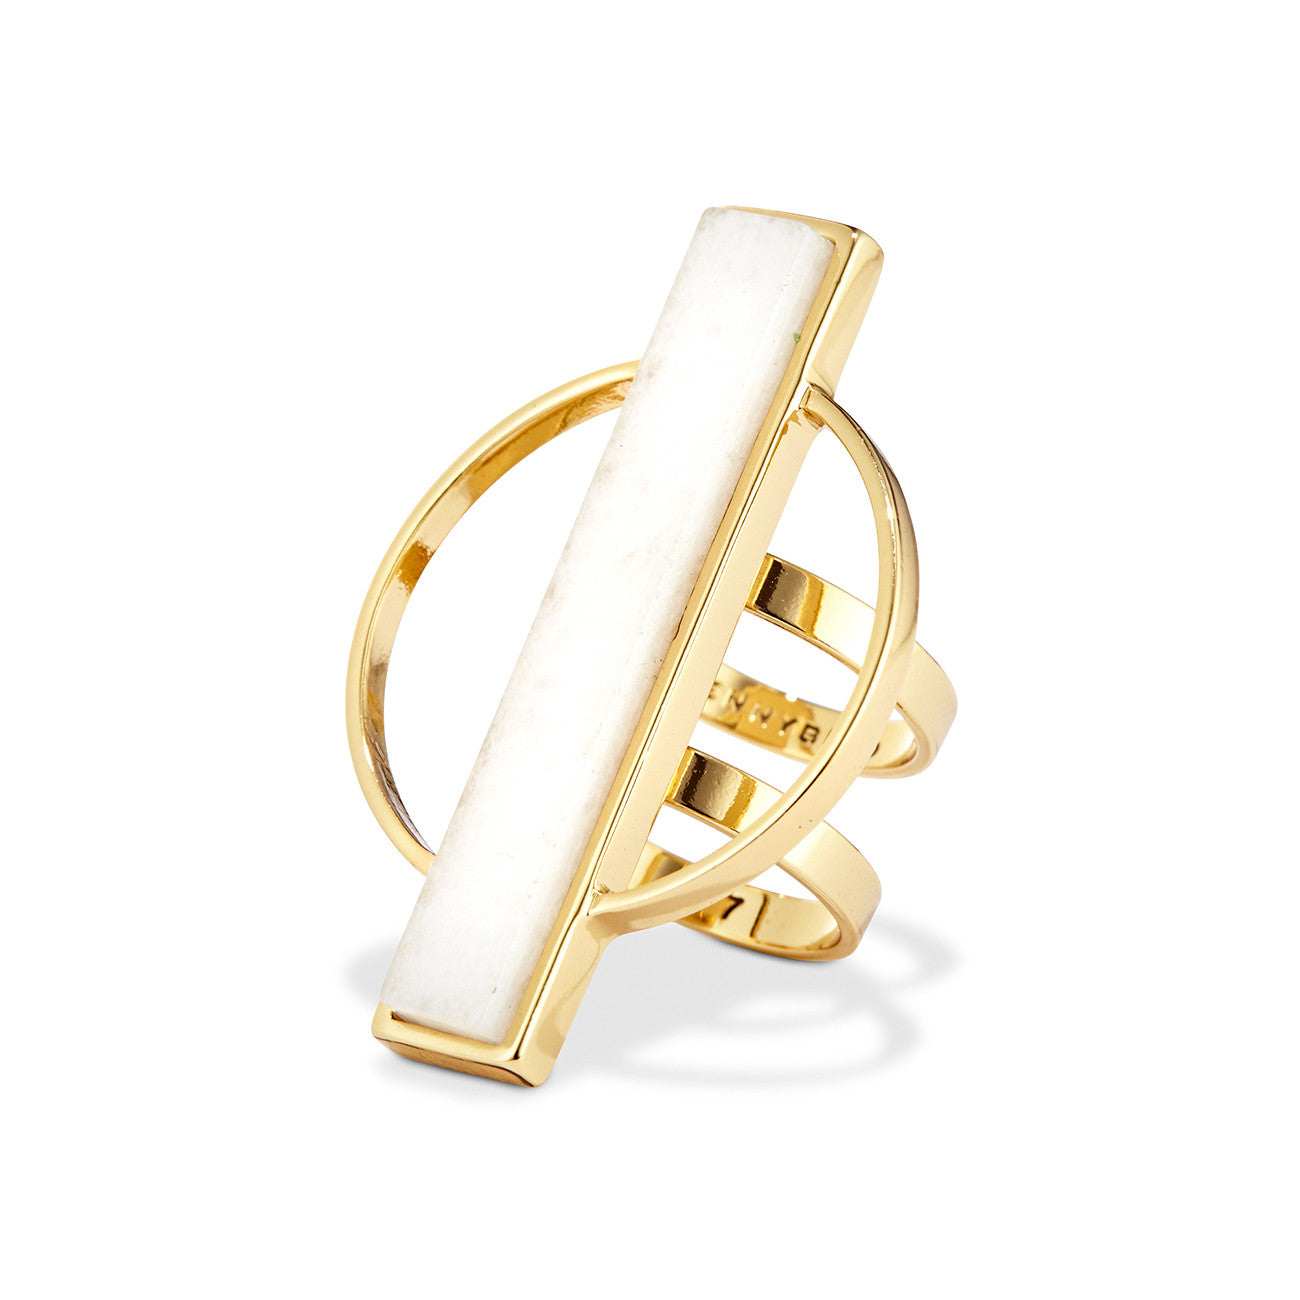 Jenny Bird Pollux Ring in High Polish Gold with Milky Jade Stone